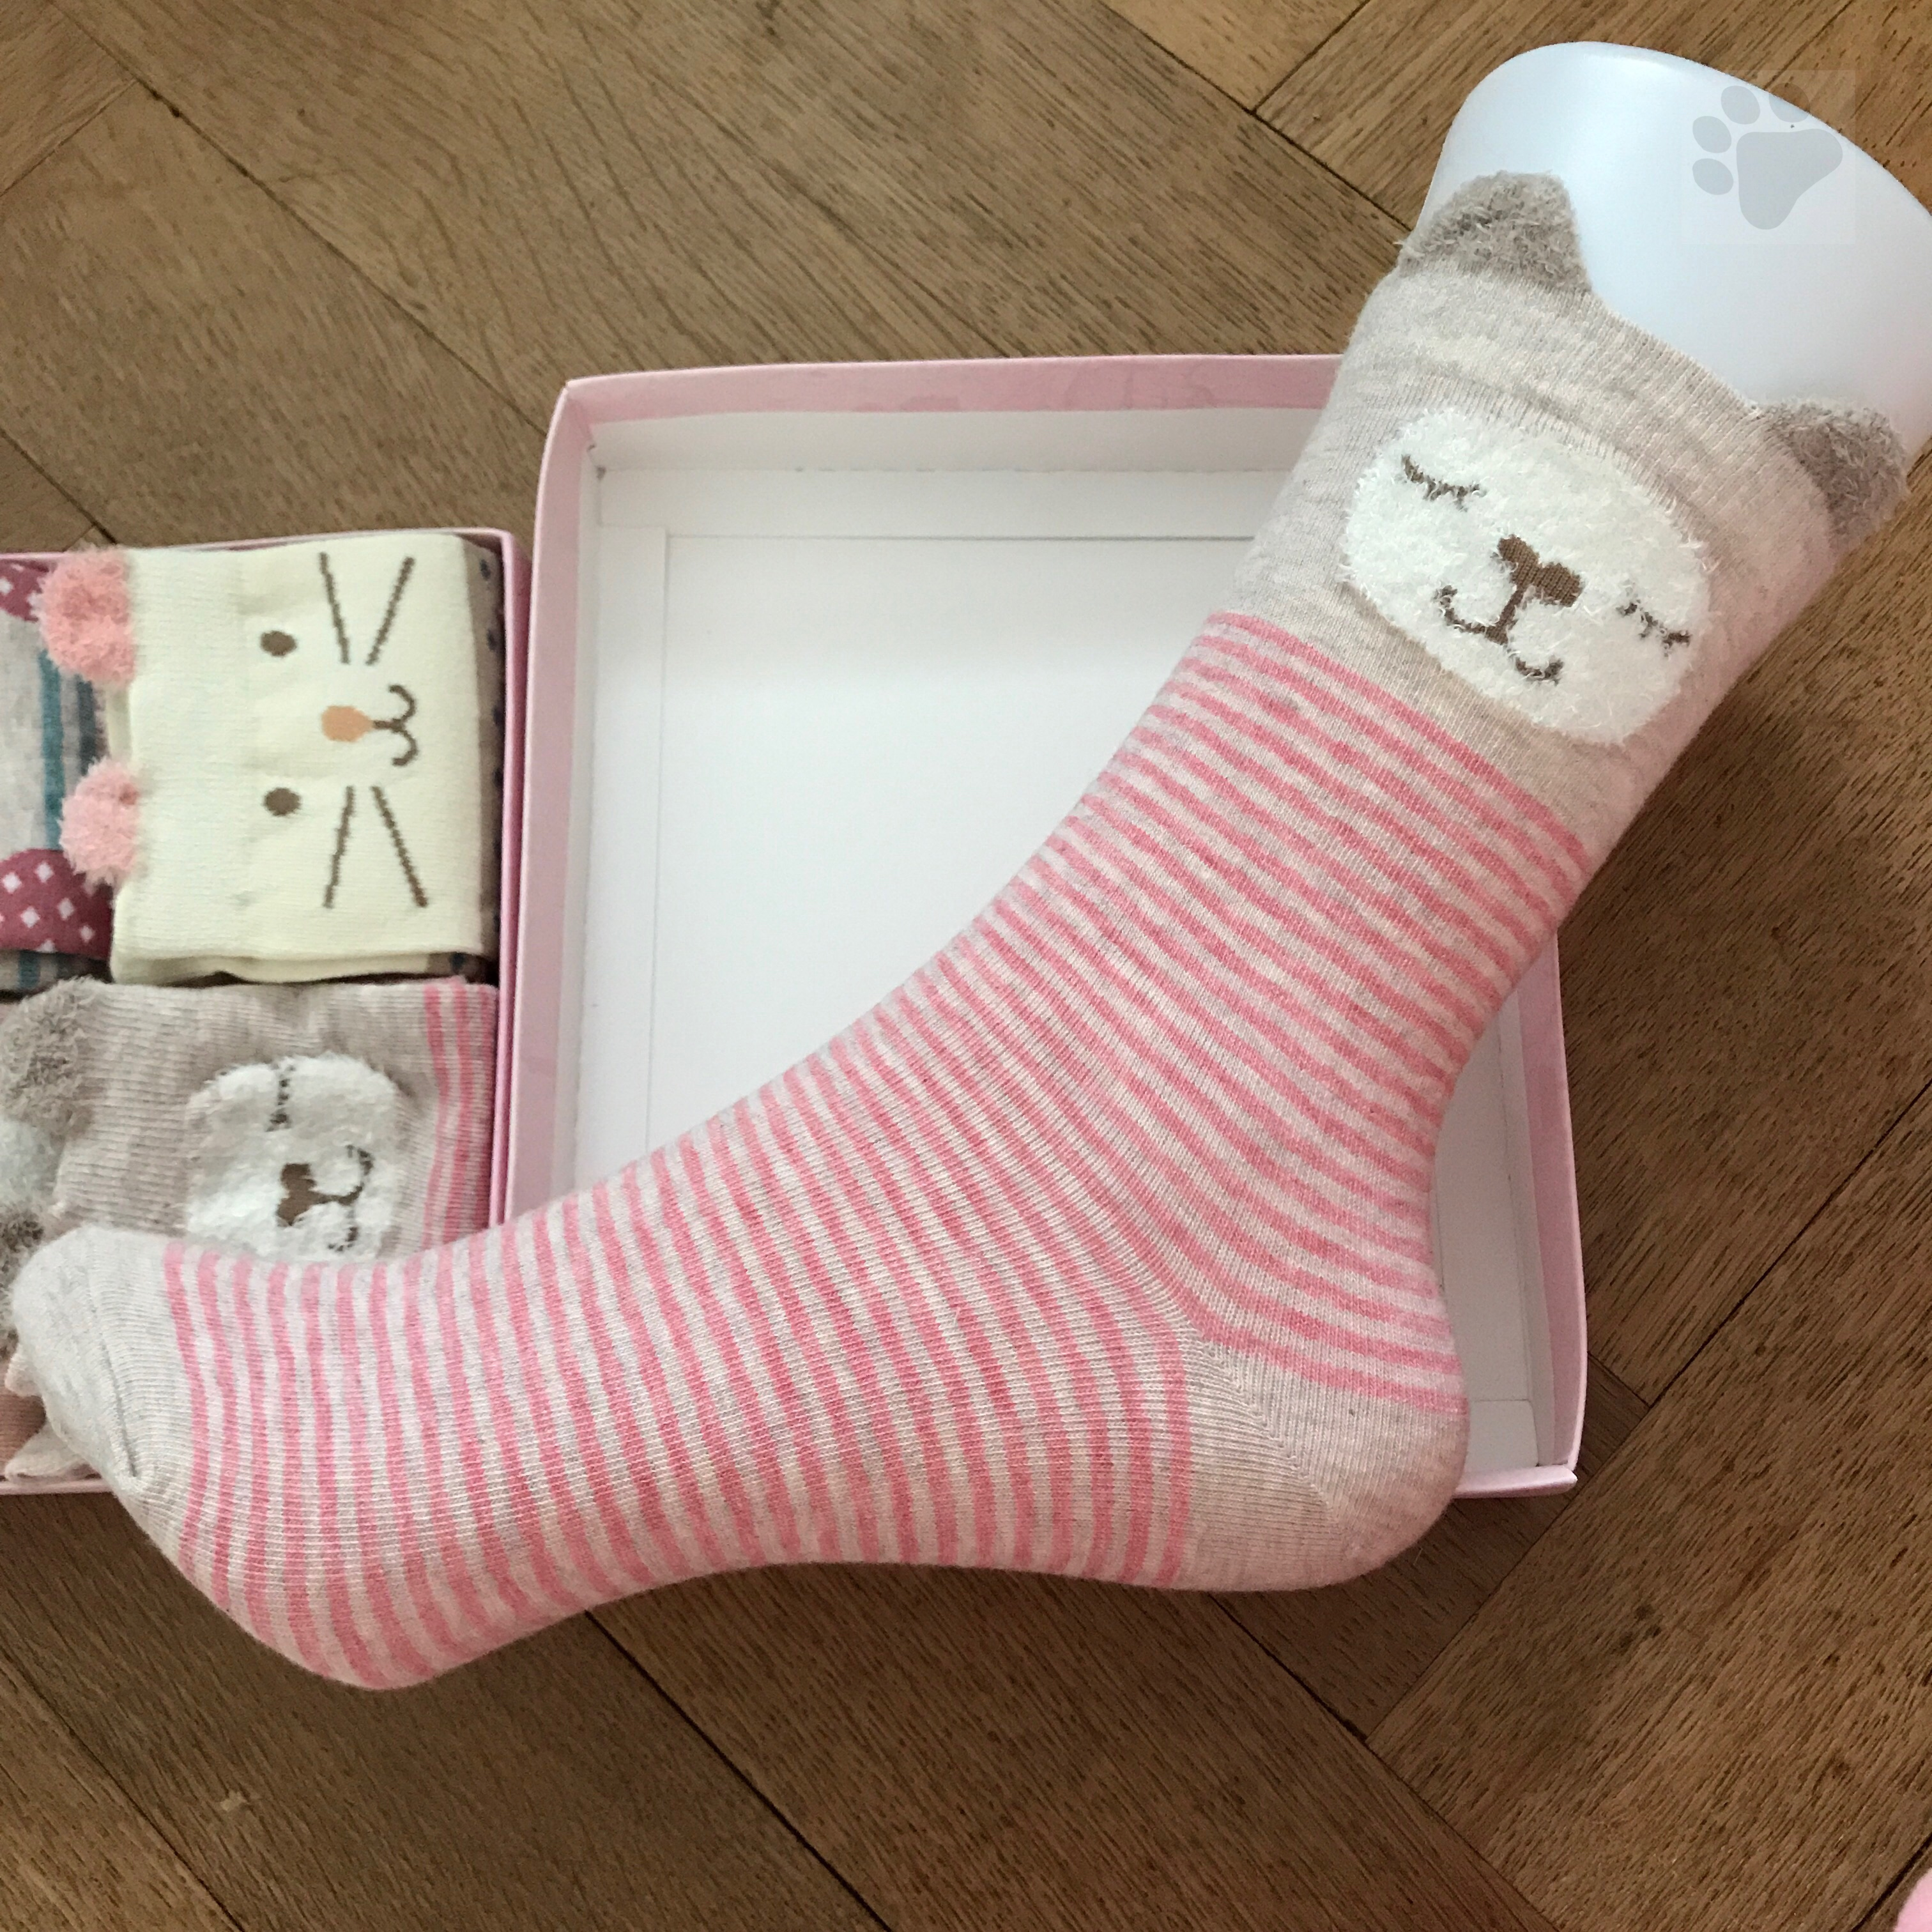 Socken Baumwolle (70%) mit Tier Muster Cartoon 4 Paare